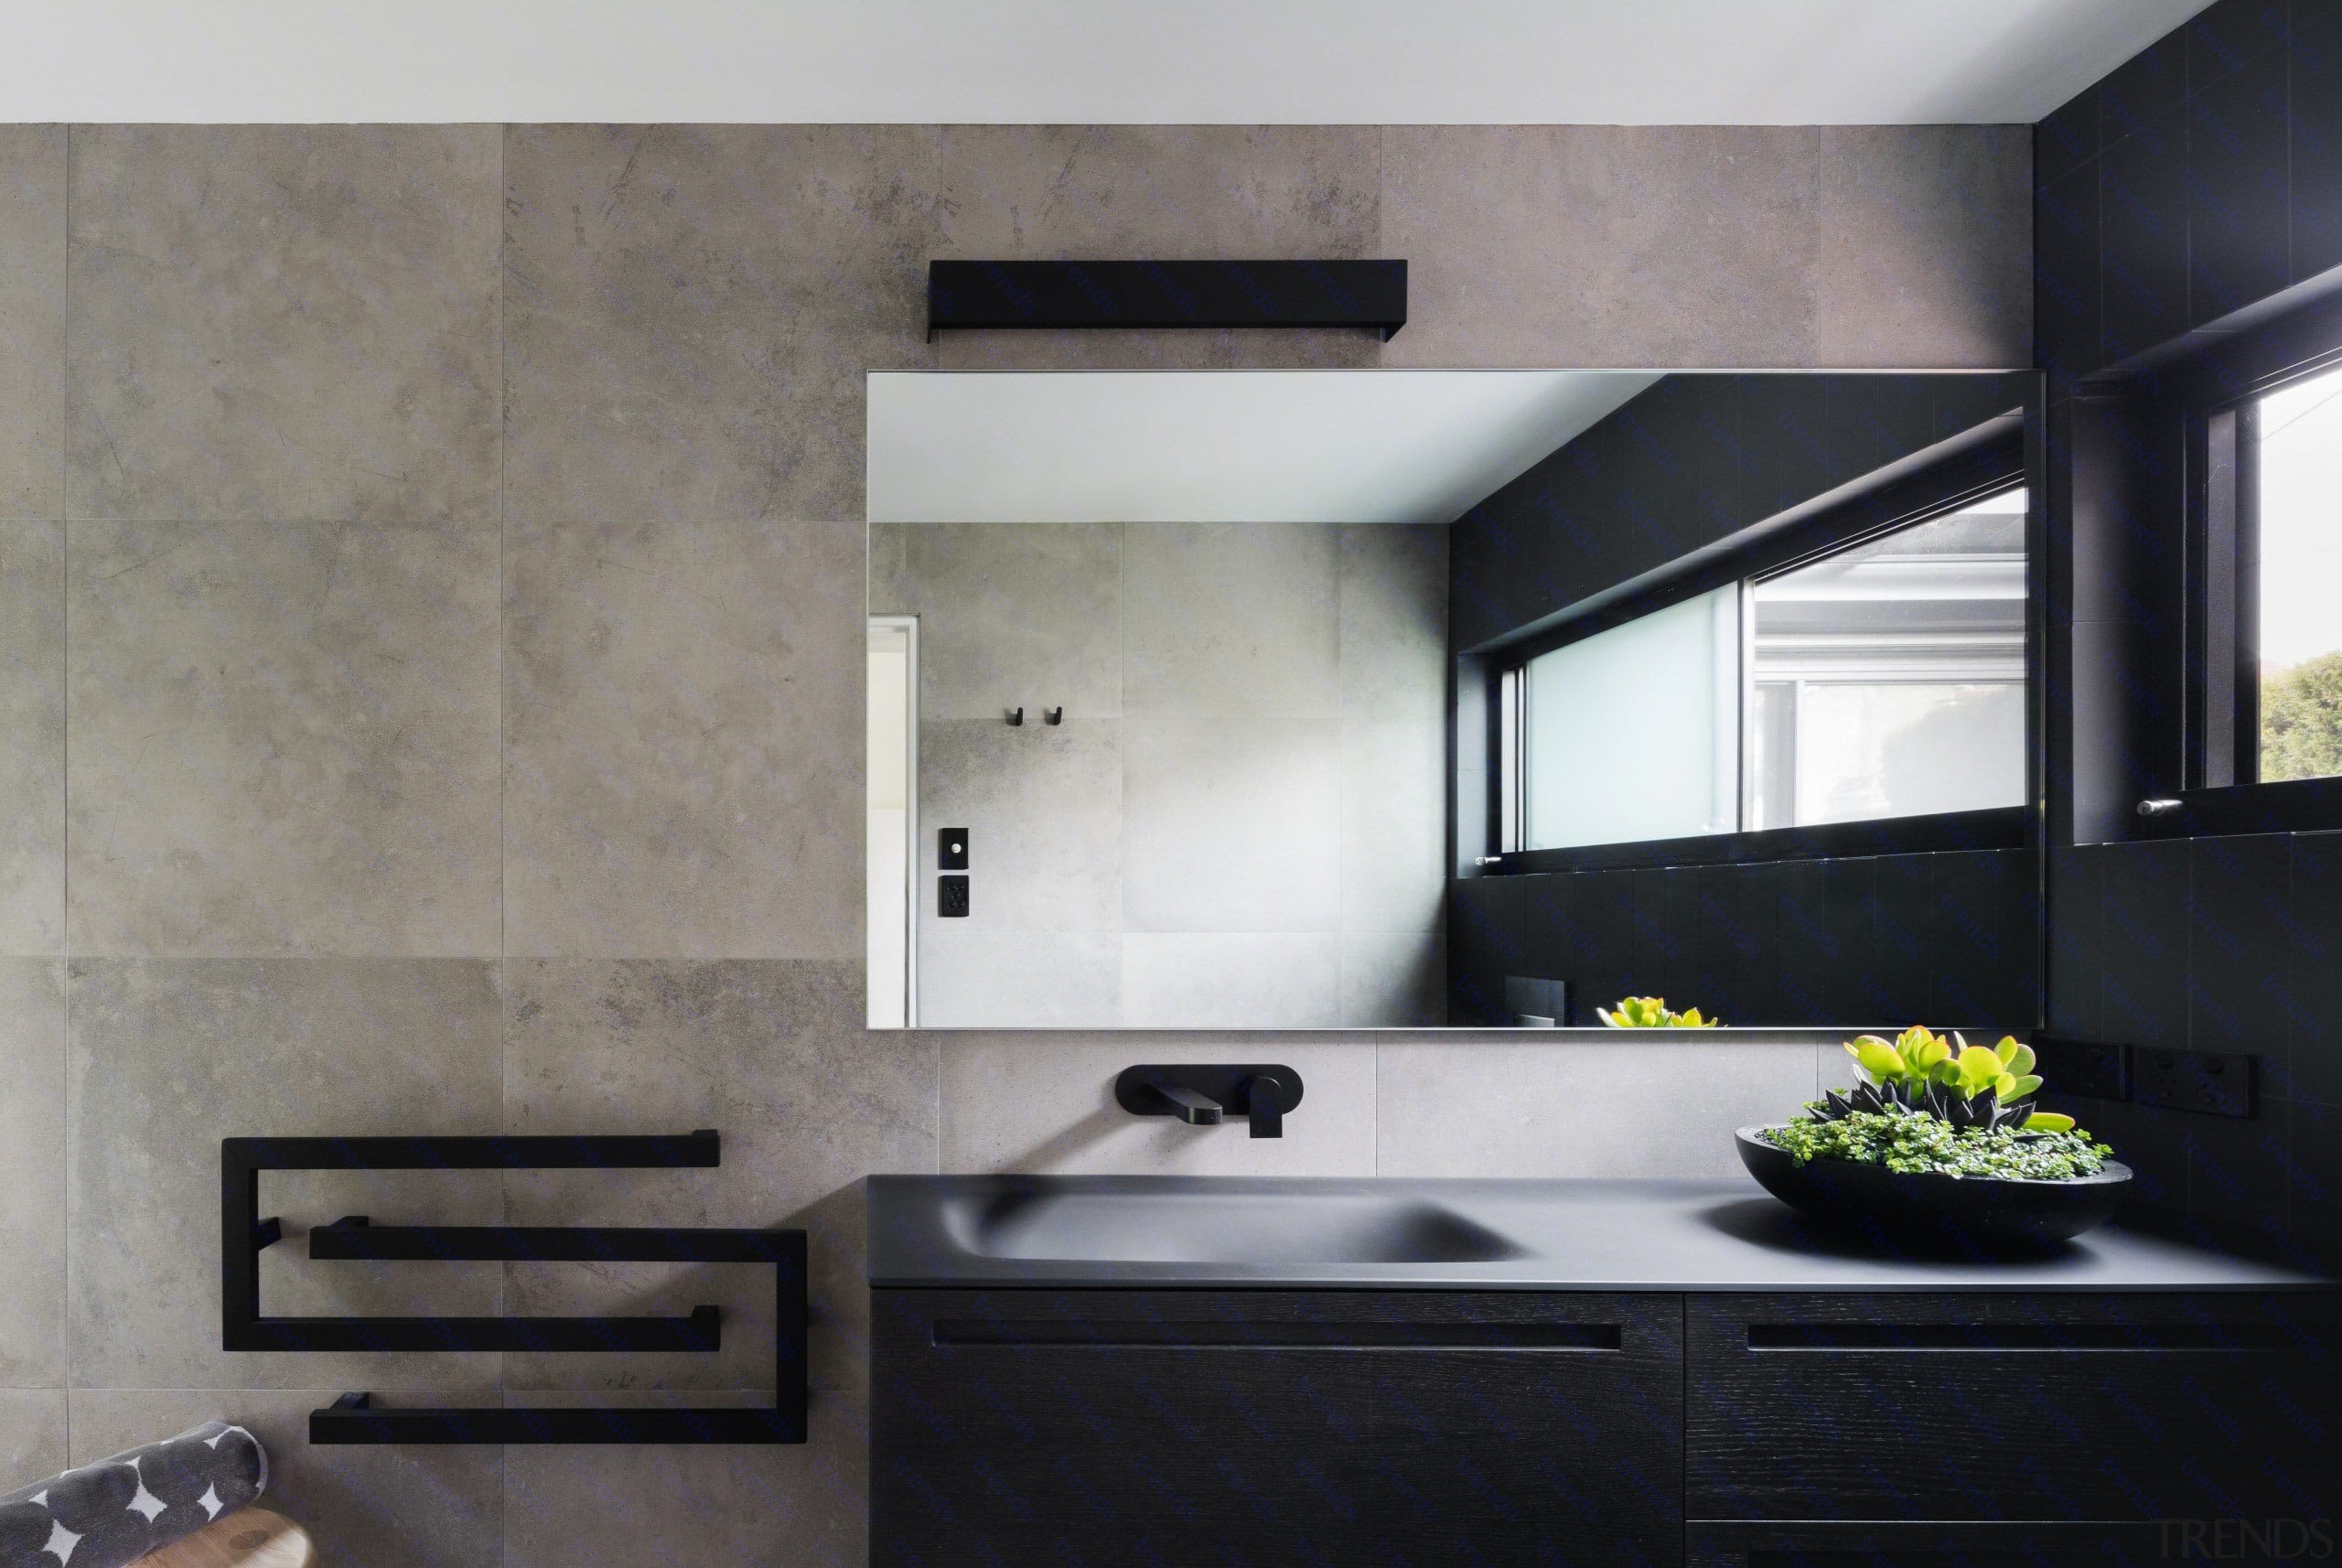 A Black Vanity And Black Accessories Avoid This architecture, countertop, interior design, kitchen, sink, wall, gray, black